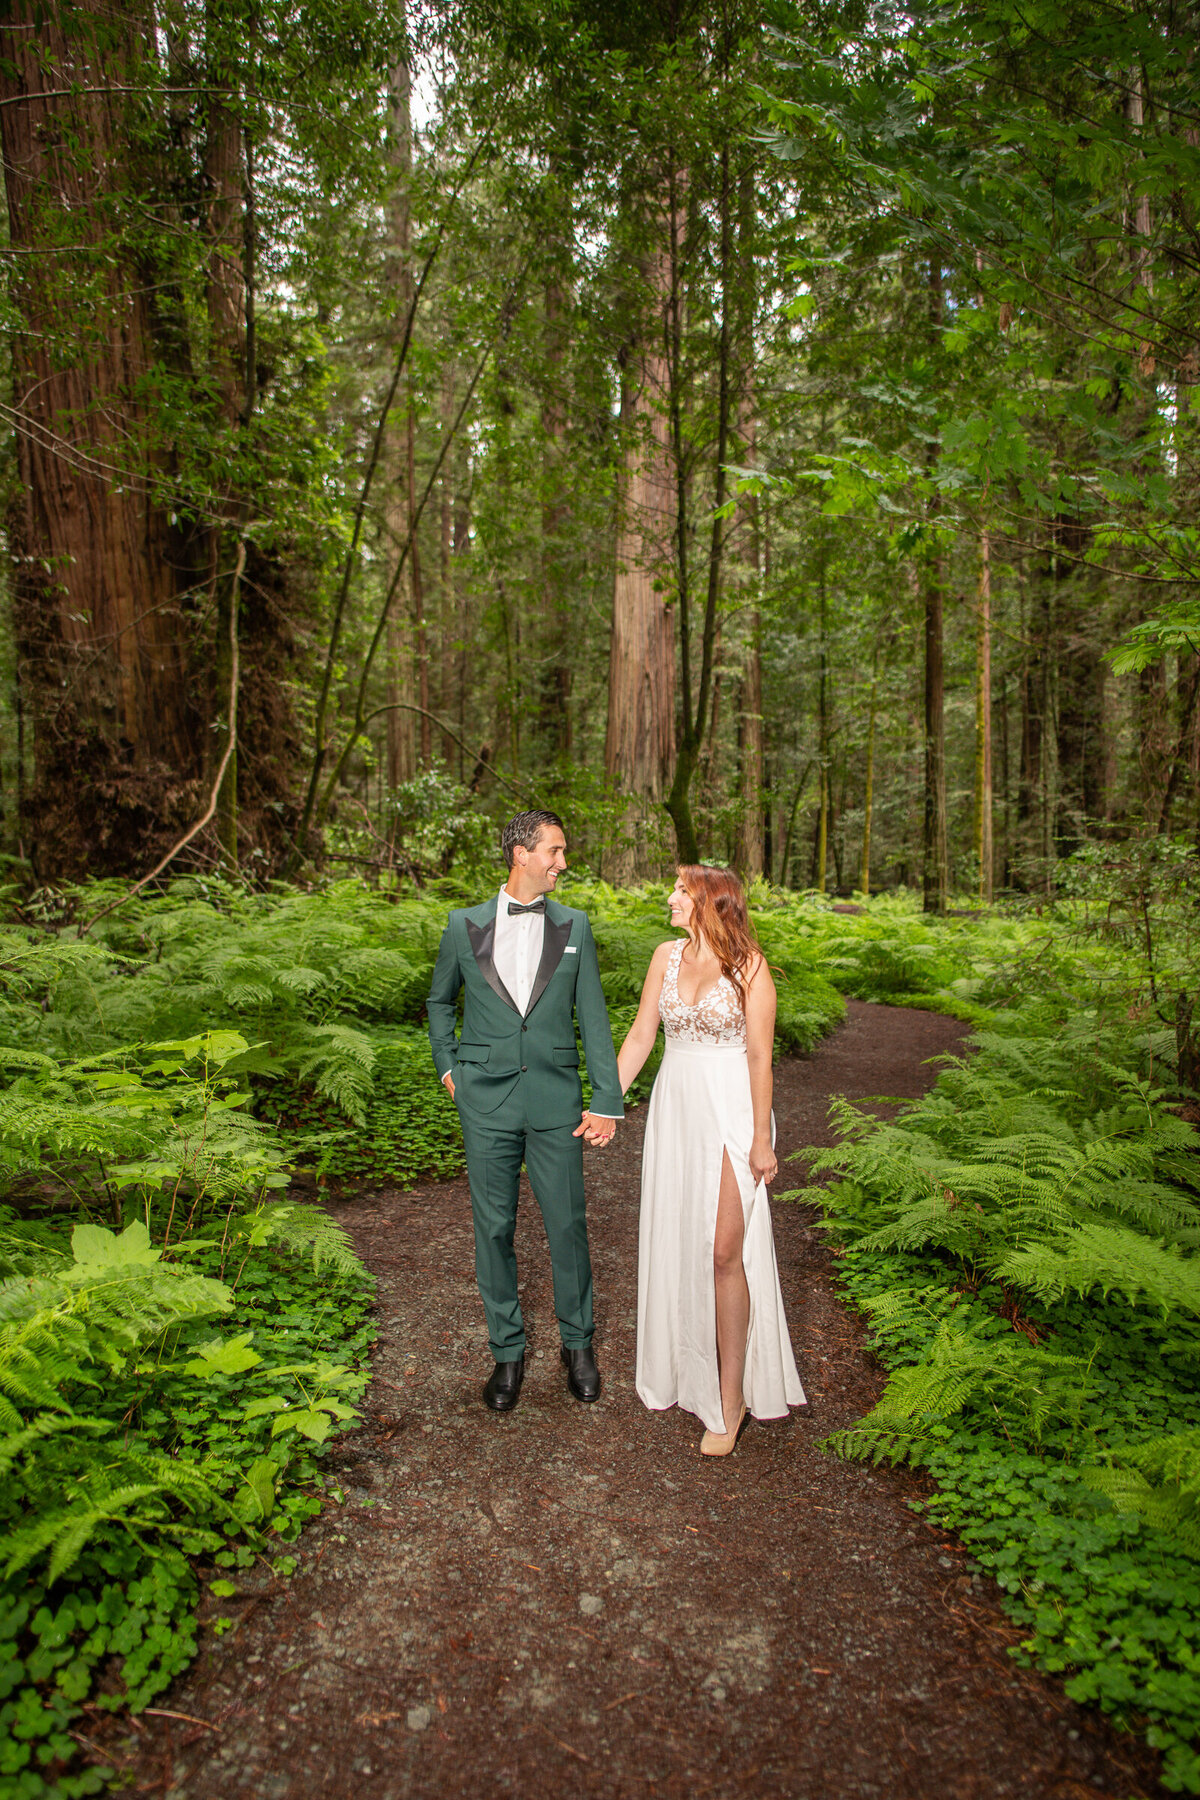 Avenue-of-the-Giants-Redwood-Forest-Elopement-Humboldt-County-Elopement-Photographer-Parky's Pics-8